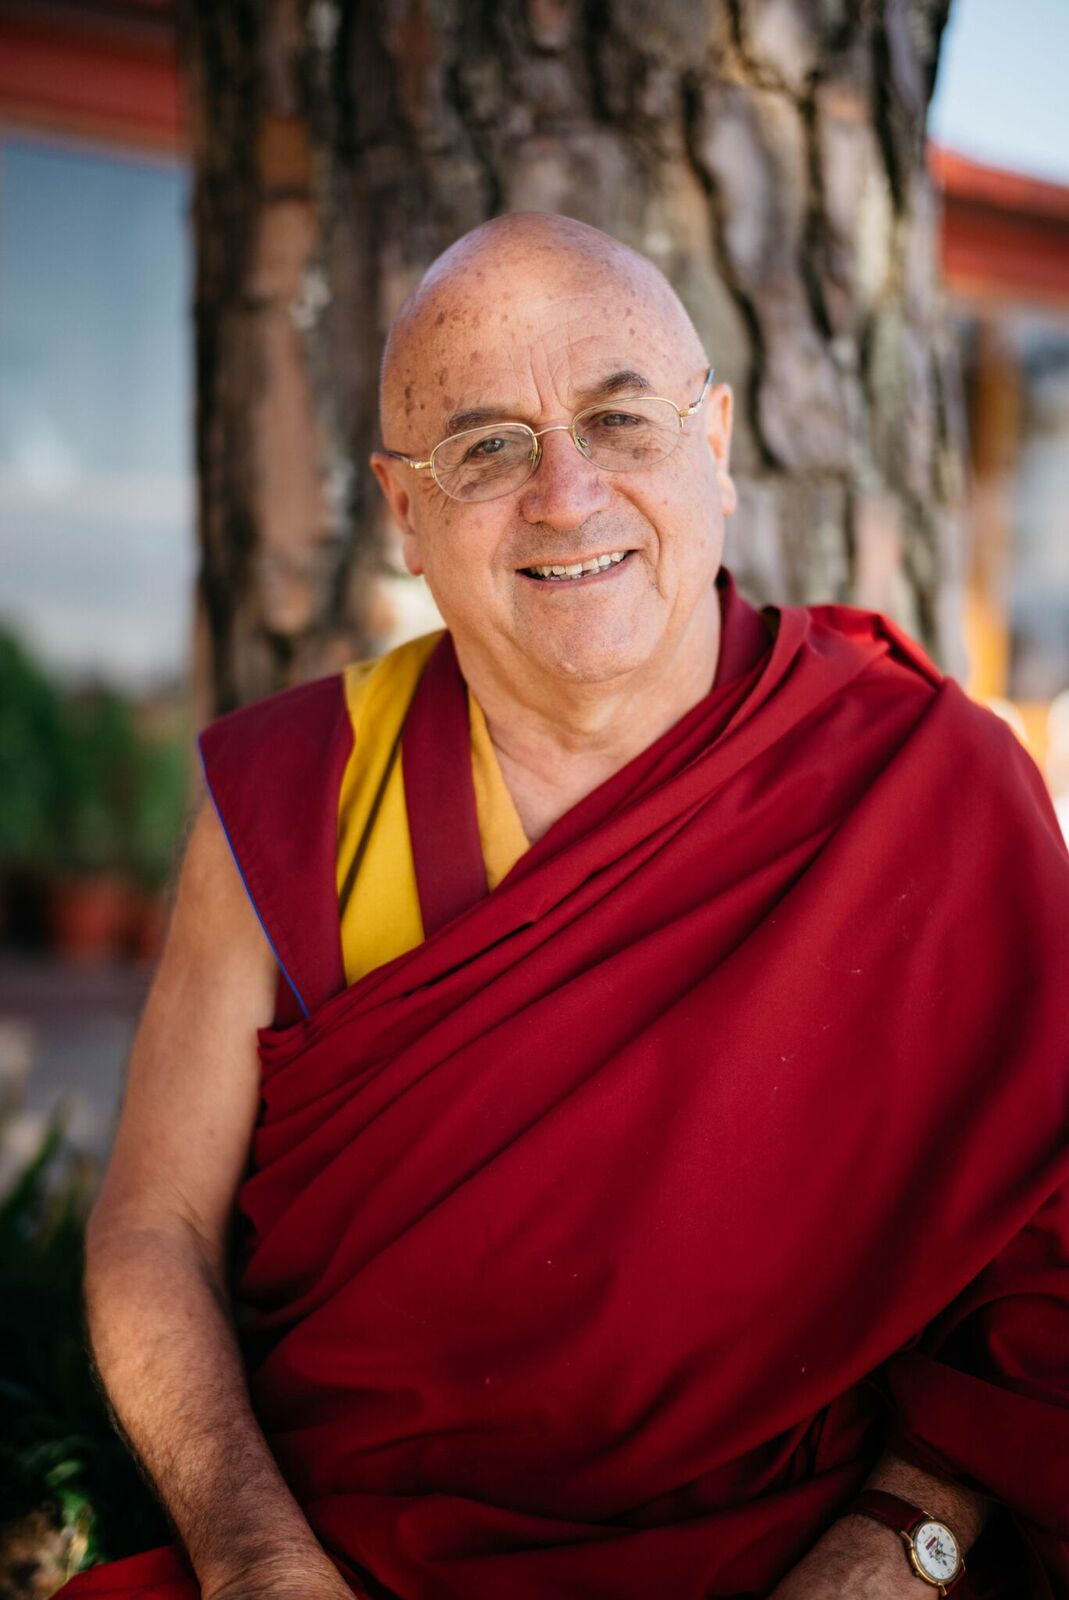 Matthieu Ricard on Happiness from the Tibetan pov